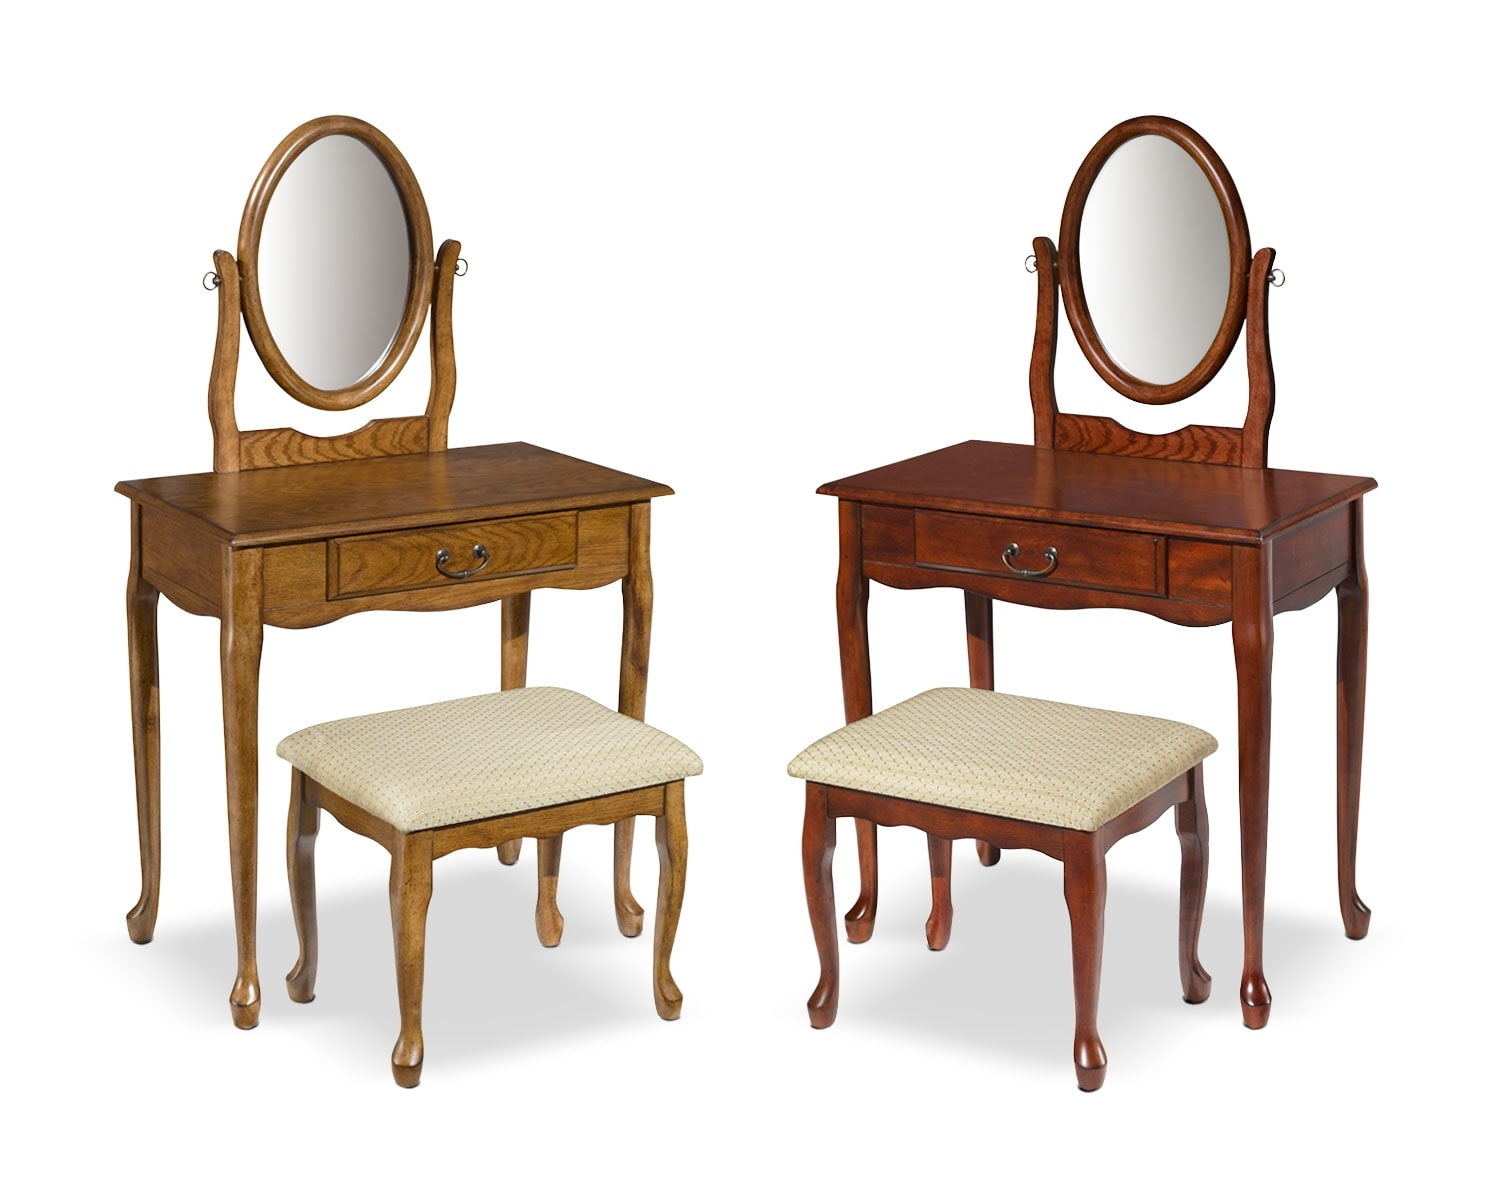 The Gracie Vanity and Stool Collection